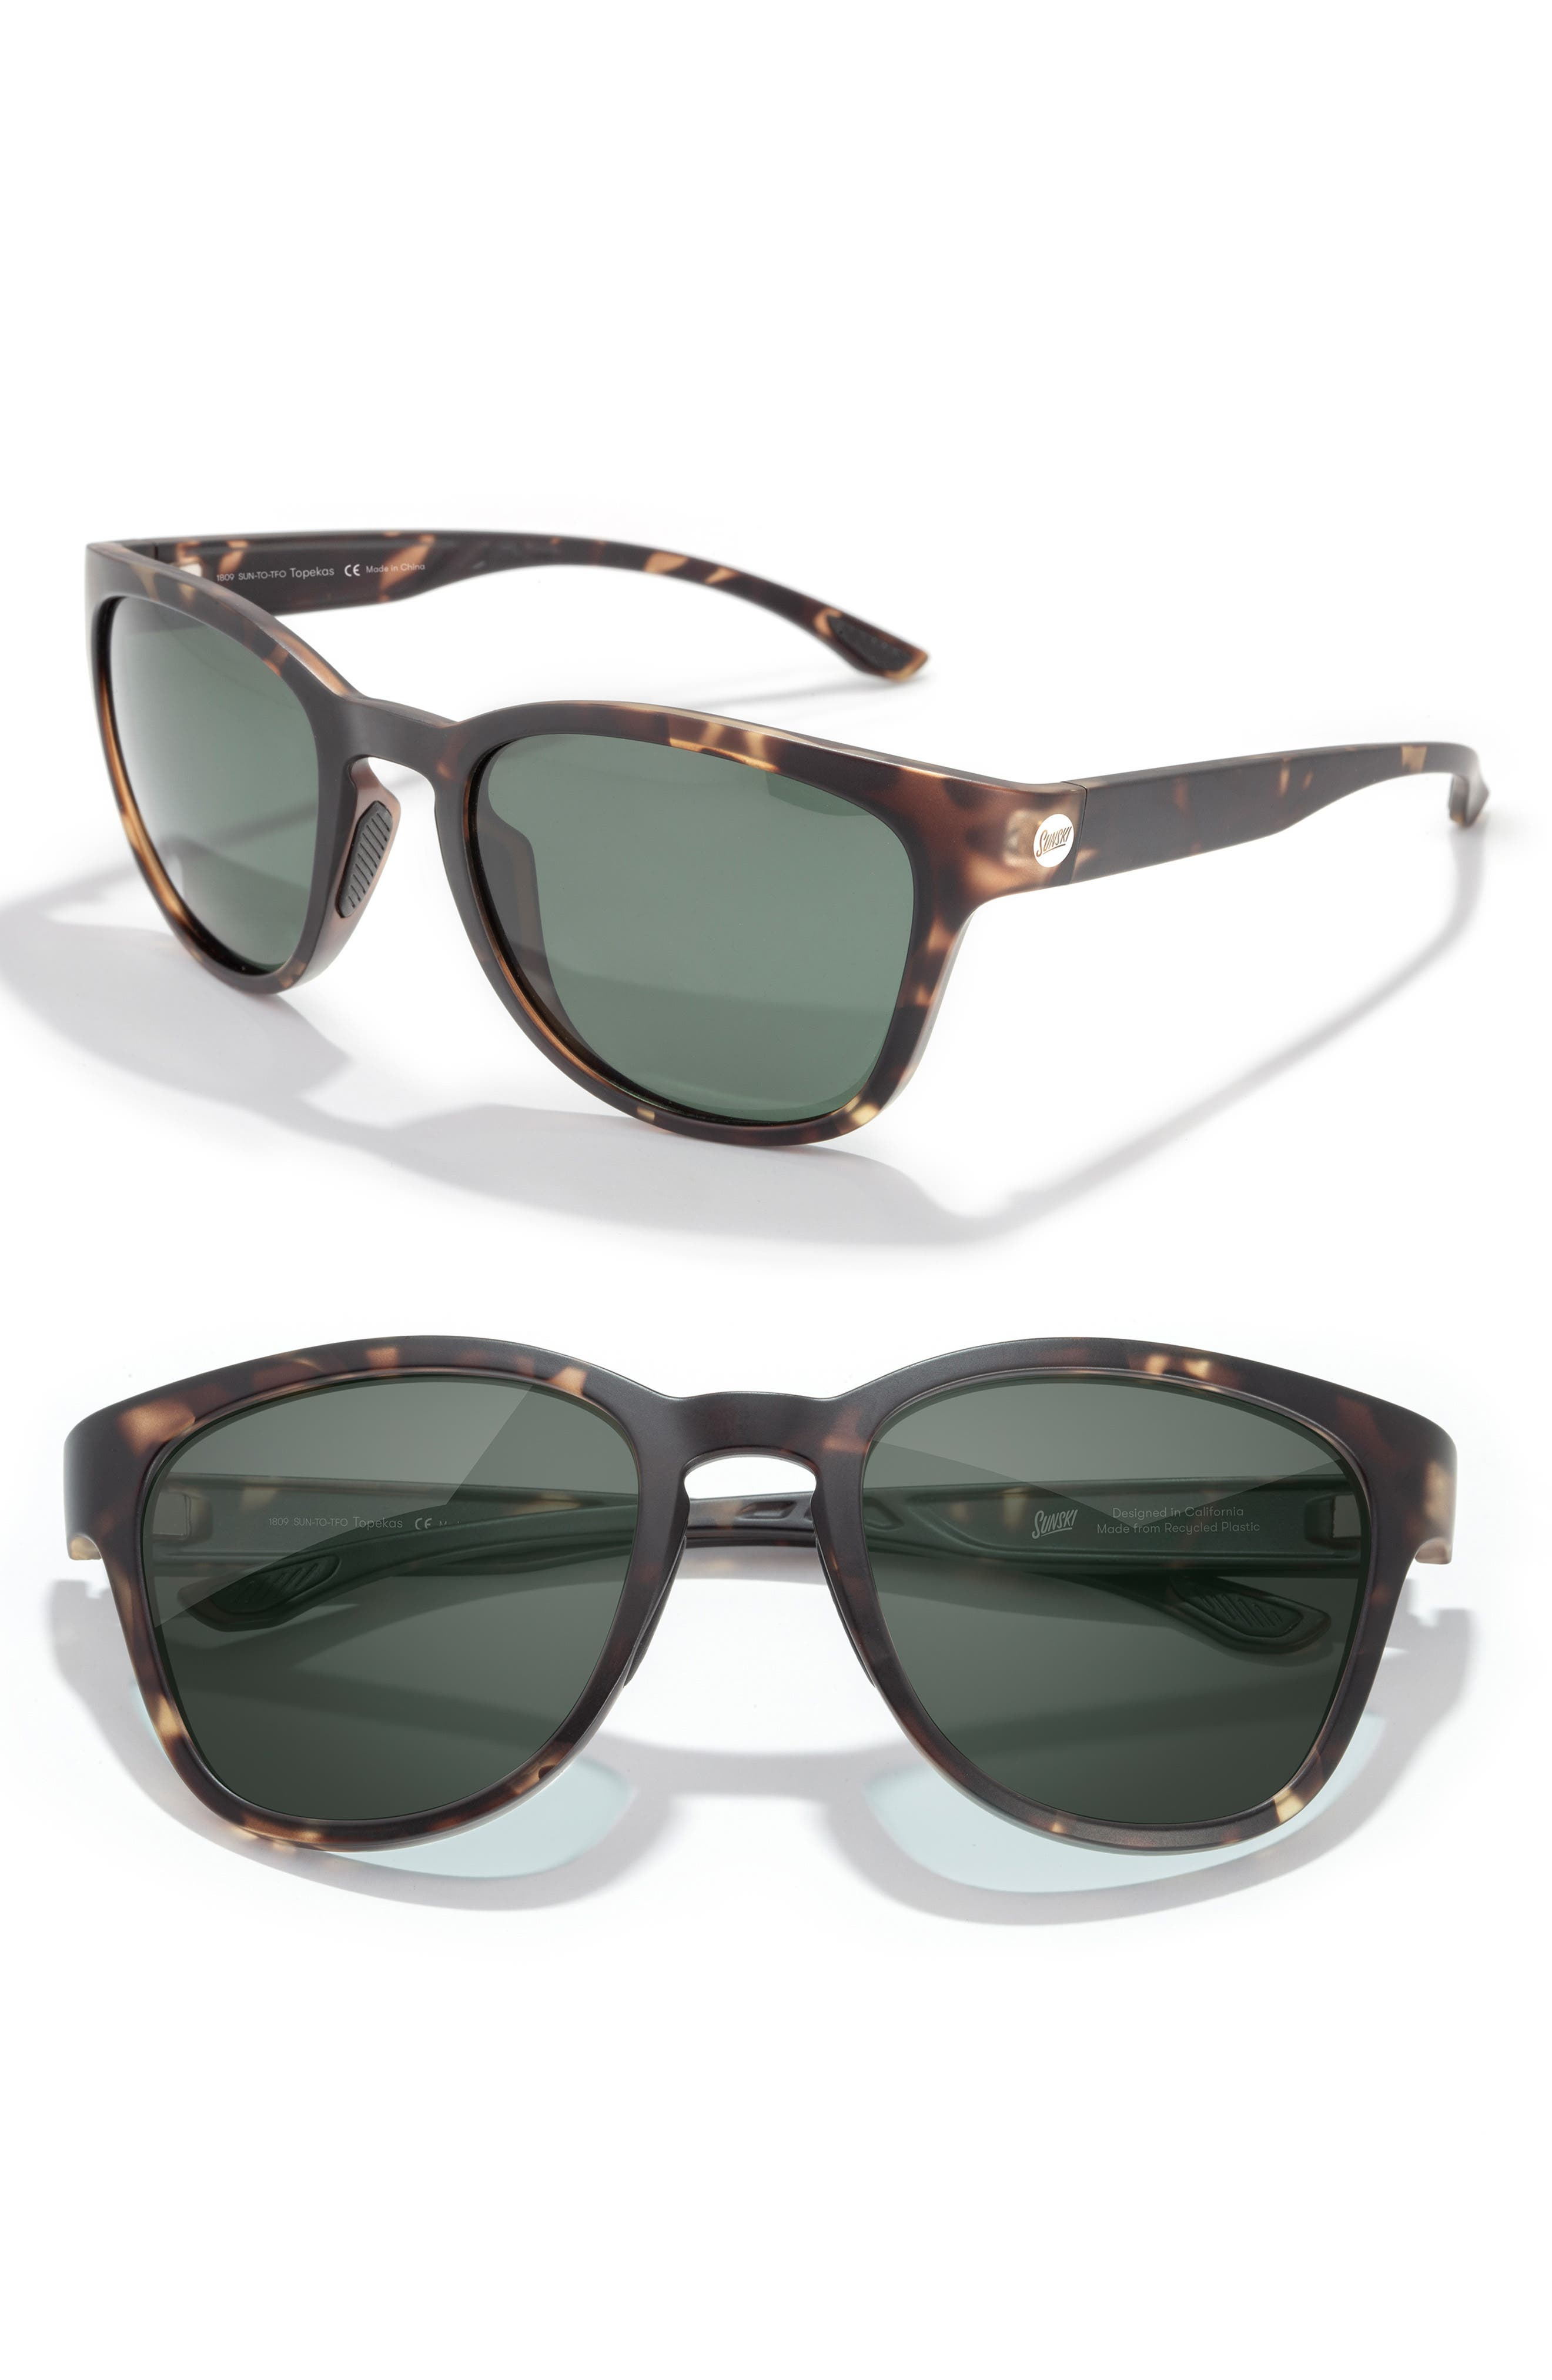 Quintessential tortoiseshell sunnies are crafted with a more rounded vintage-inspired shape that\\\'s versatile for most faces with soft flexibility to conform. Antireflective polarized lenses with full UV protection ensure true color-clarity that won\\\'t have you squinting in the blinding light. Style Name: Sunski Topekas 51mm Polarized Sunglasses. Style Number: 5799779. Available in stores.